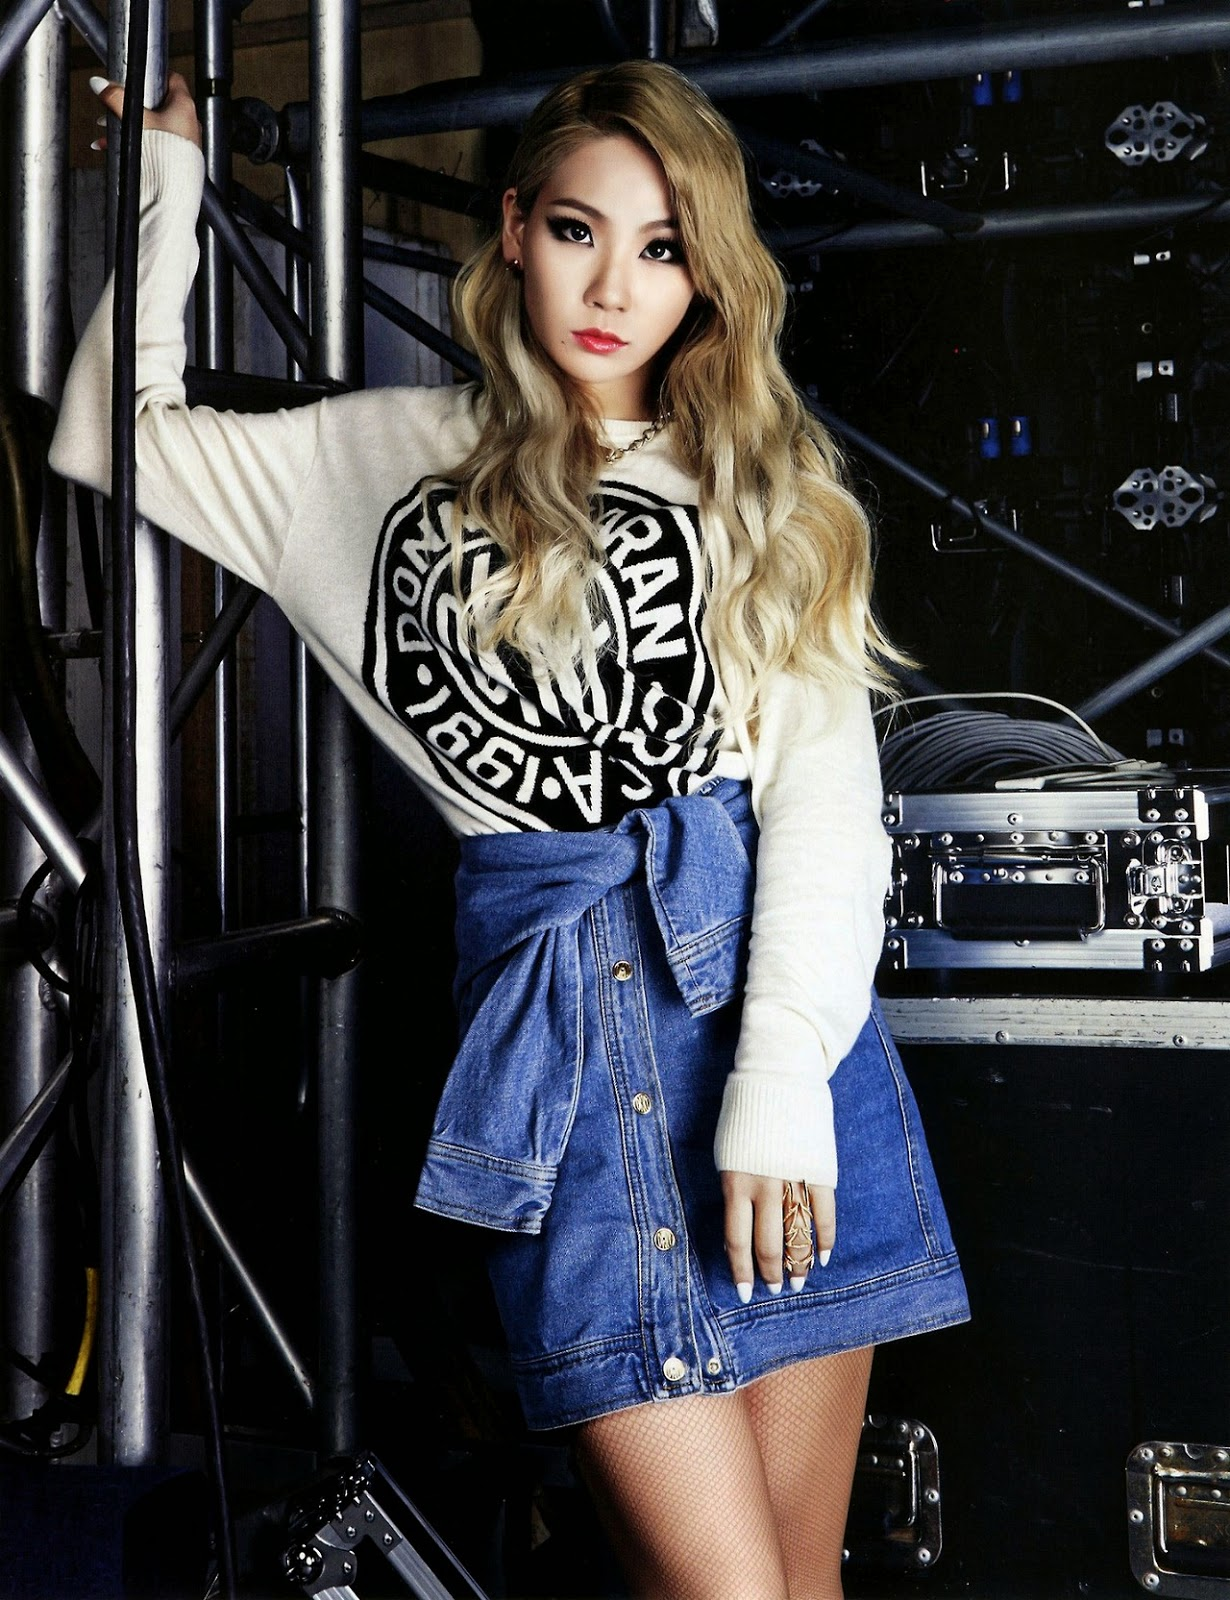 CL 2NE1 - Harper's Bazaar Magazine May Issue 2014